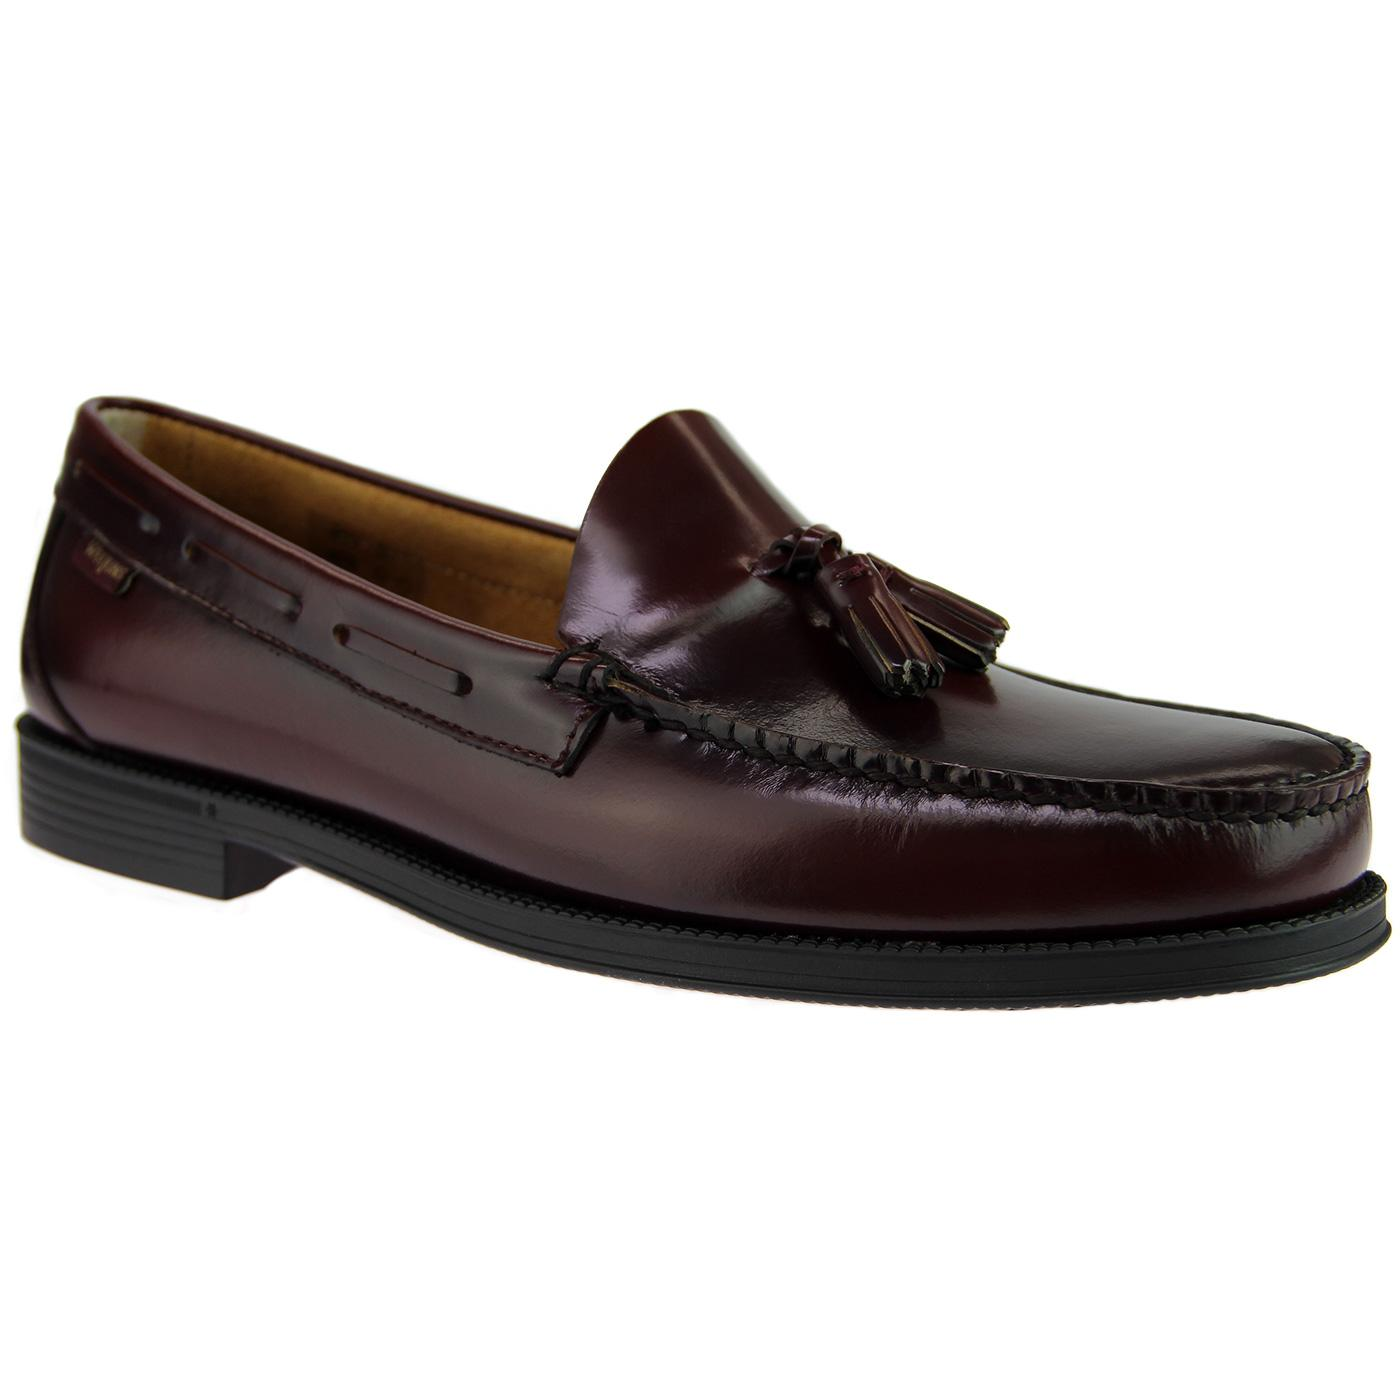 Larkin Easy BASS WEEJUNS Moccasin Tassel Loafers W